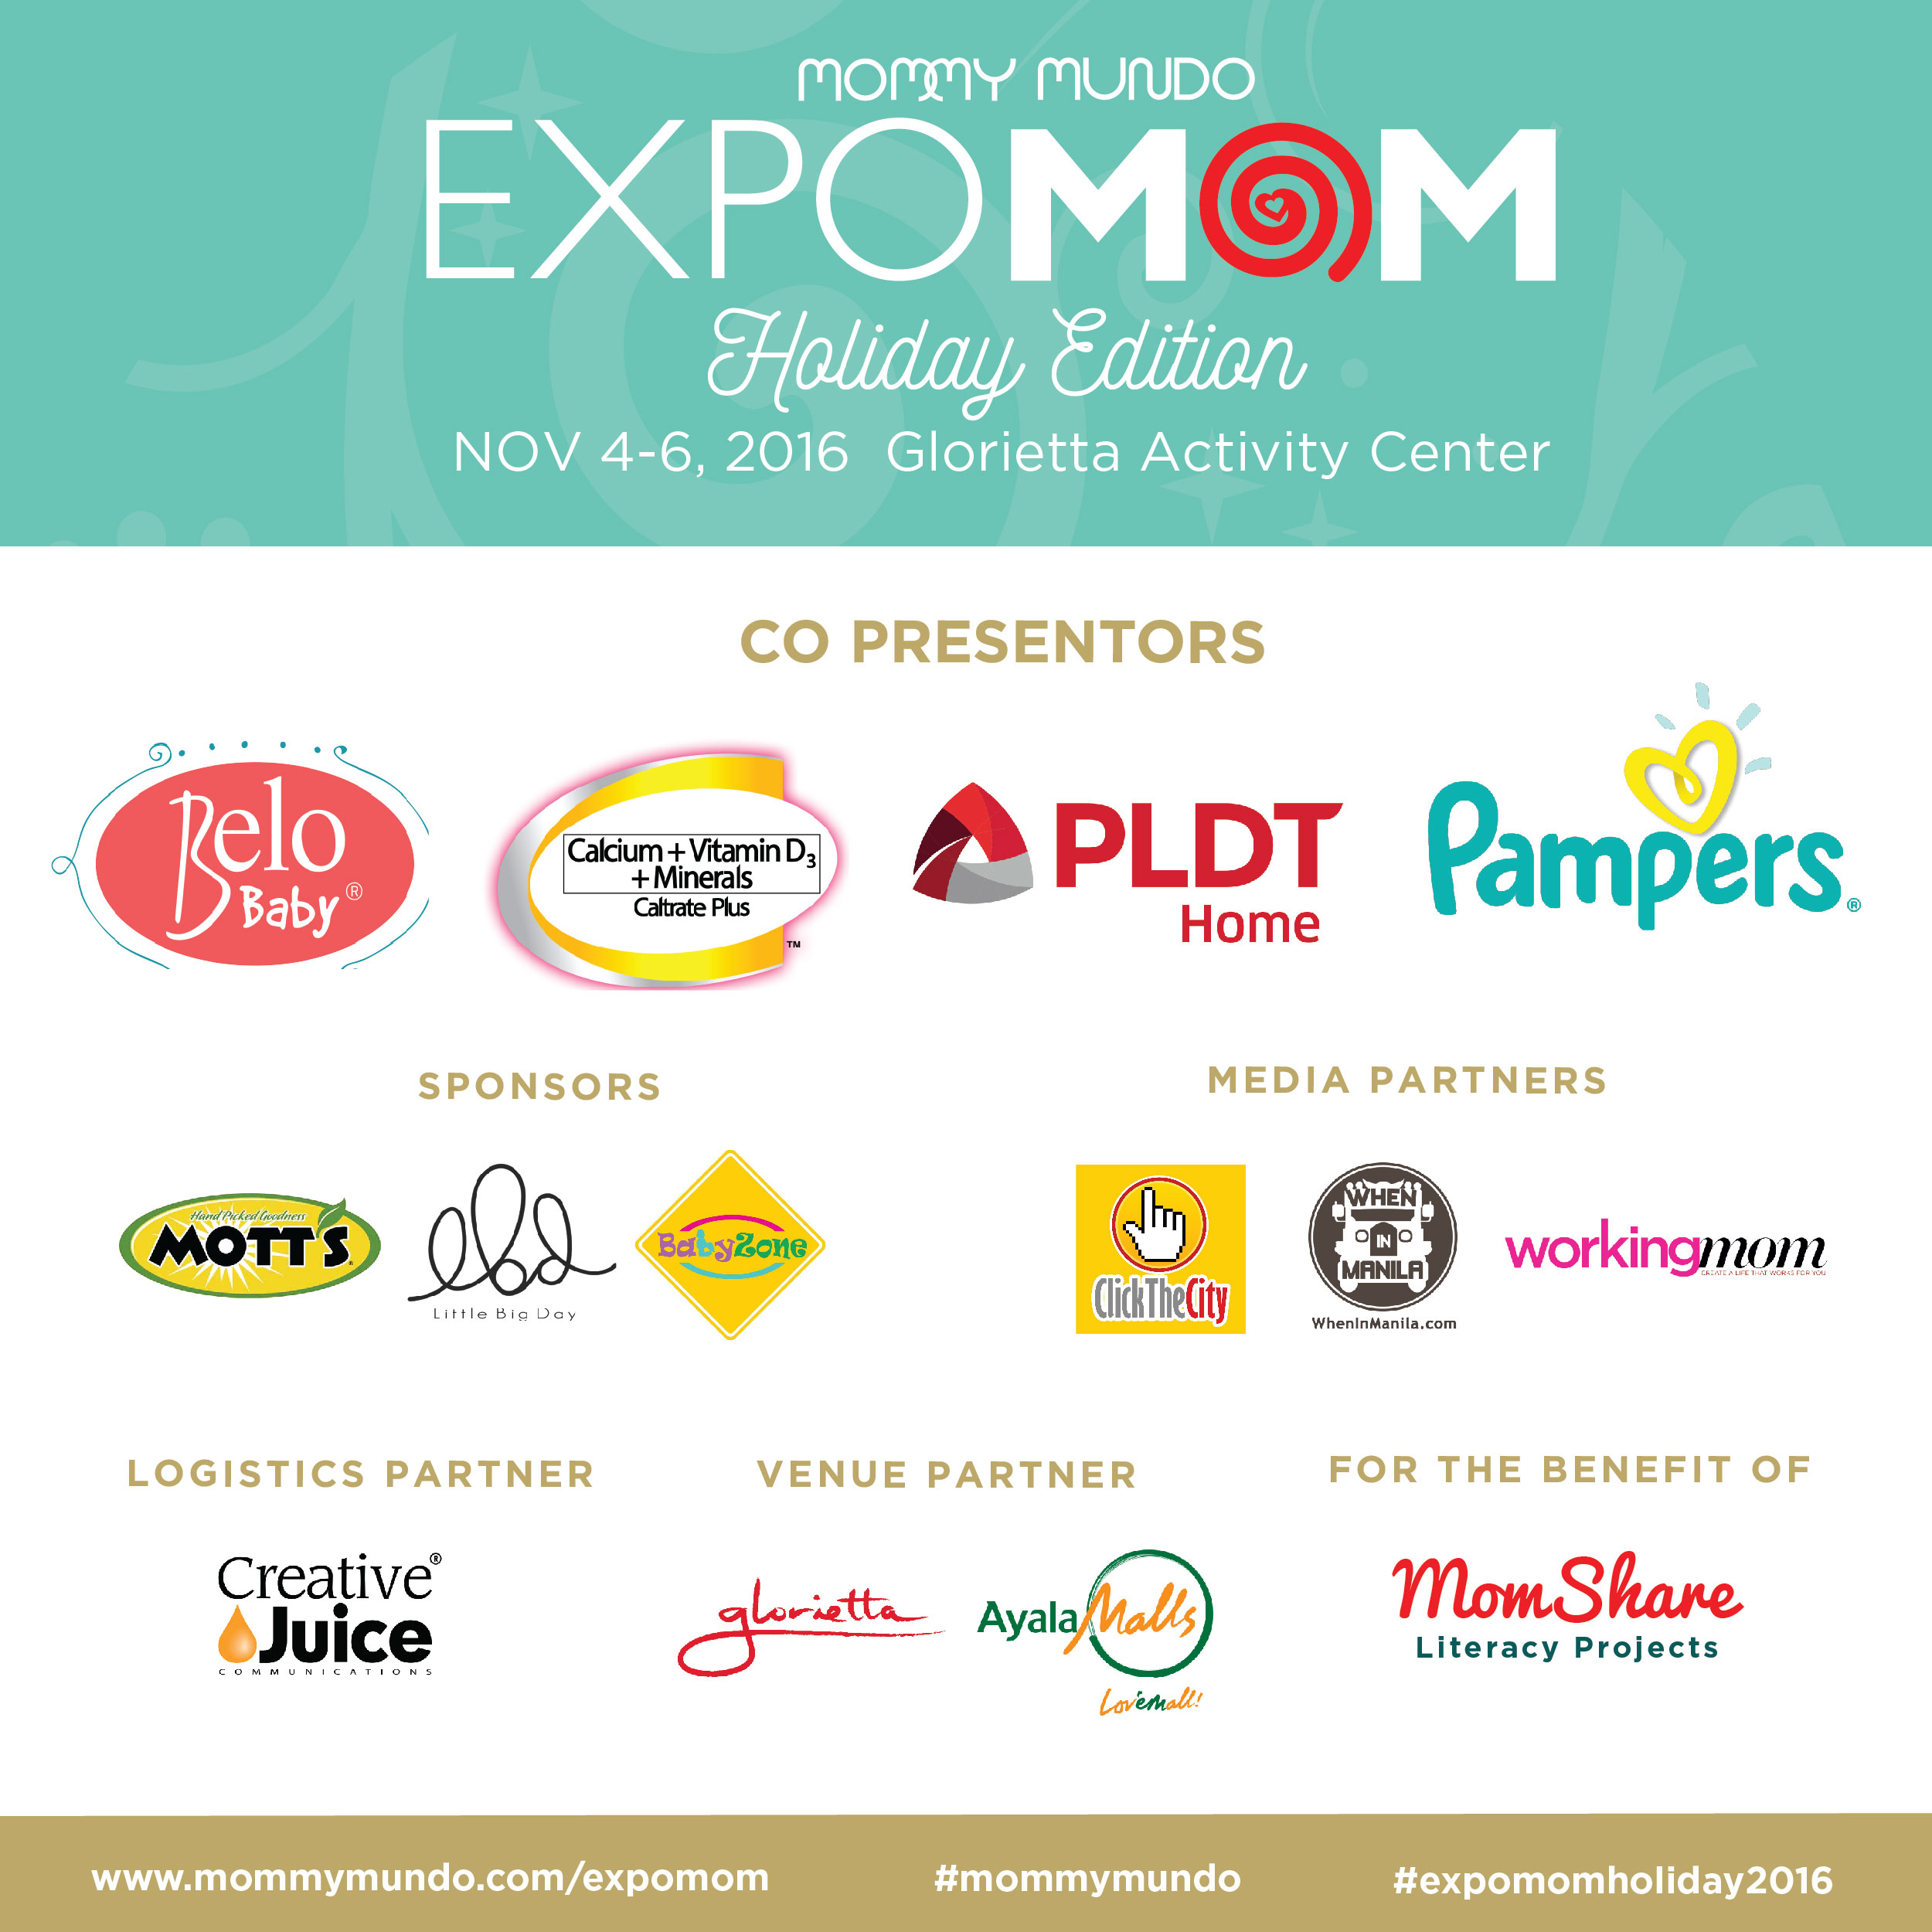 Expomom 2016 Holiday Edition